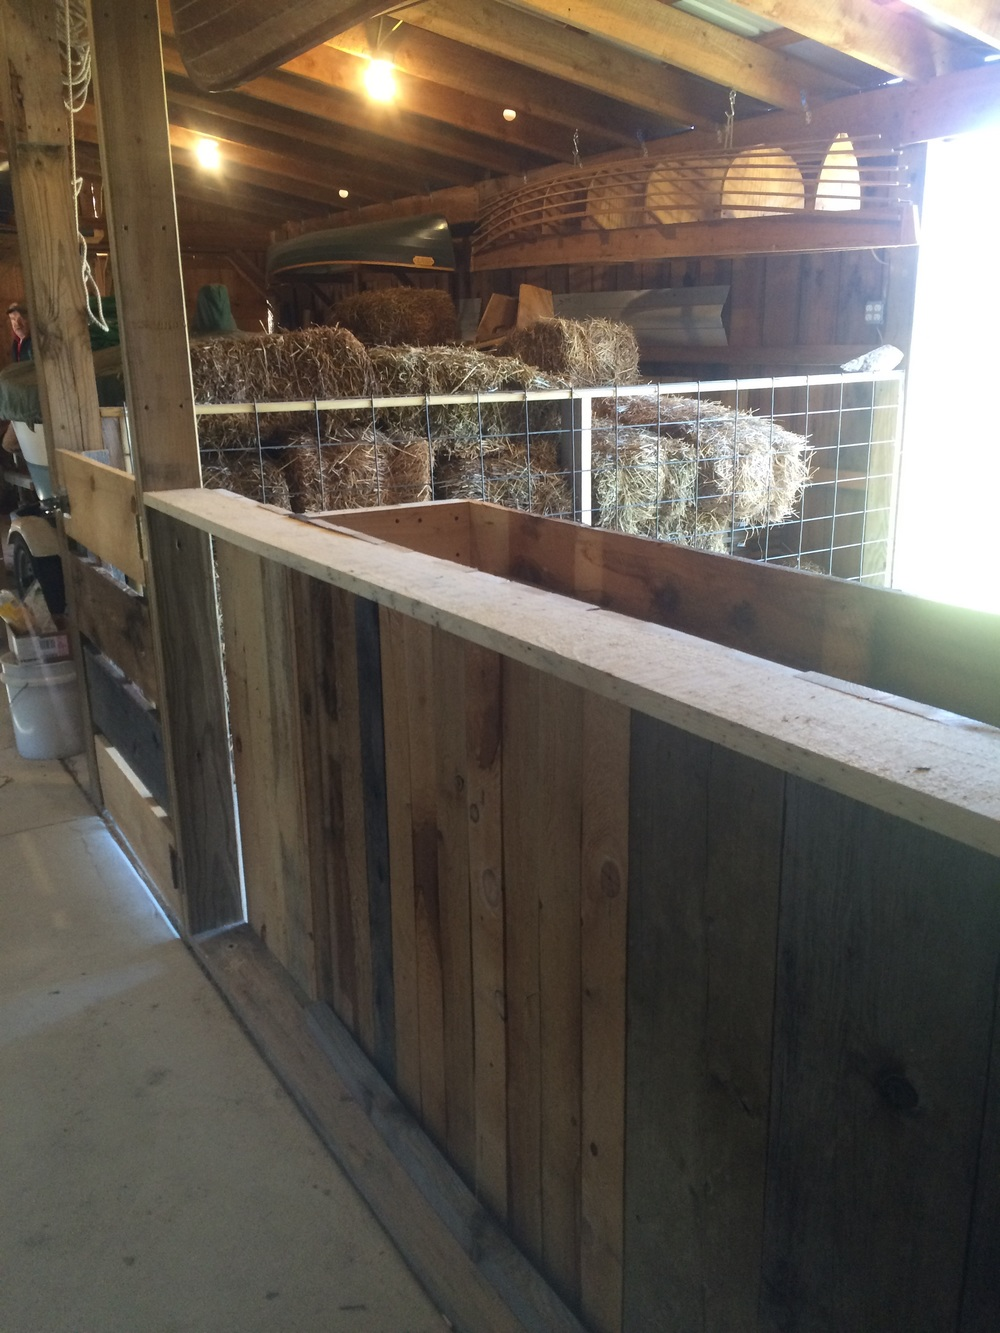 High stall walls should keep separated sheep in place.